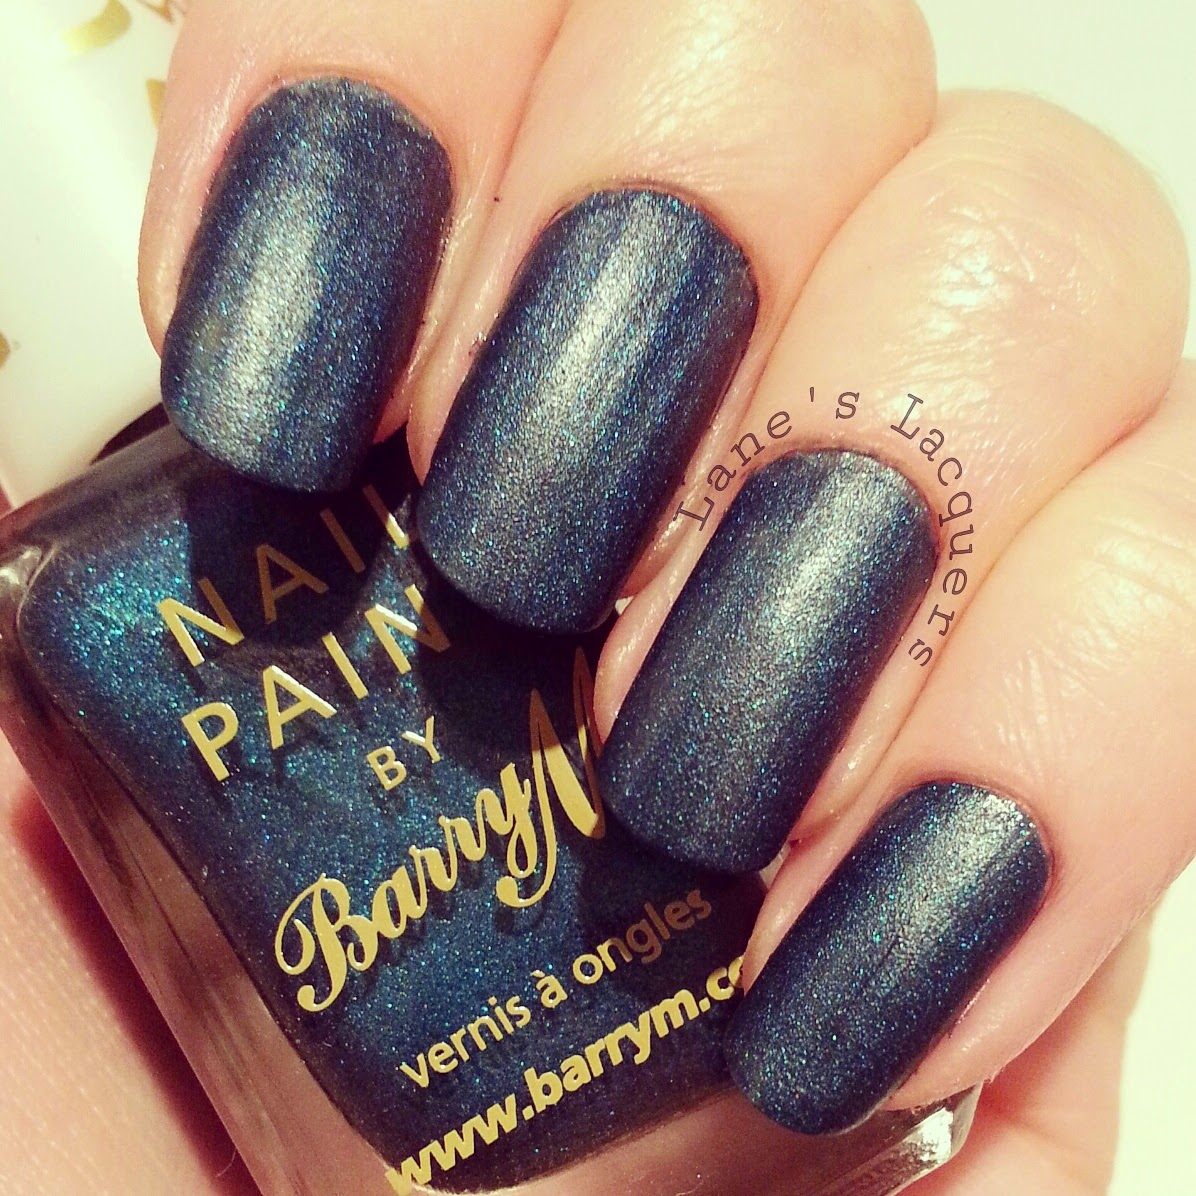 new-barry-m-silk-forest-swatch-manicure (2)